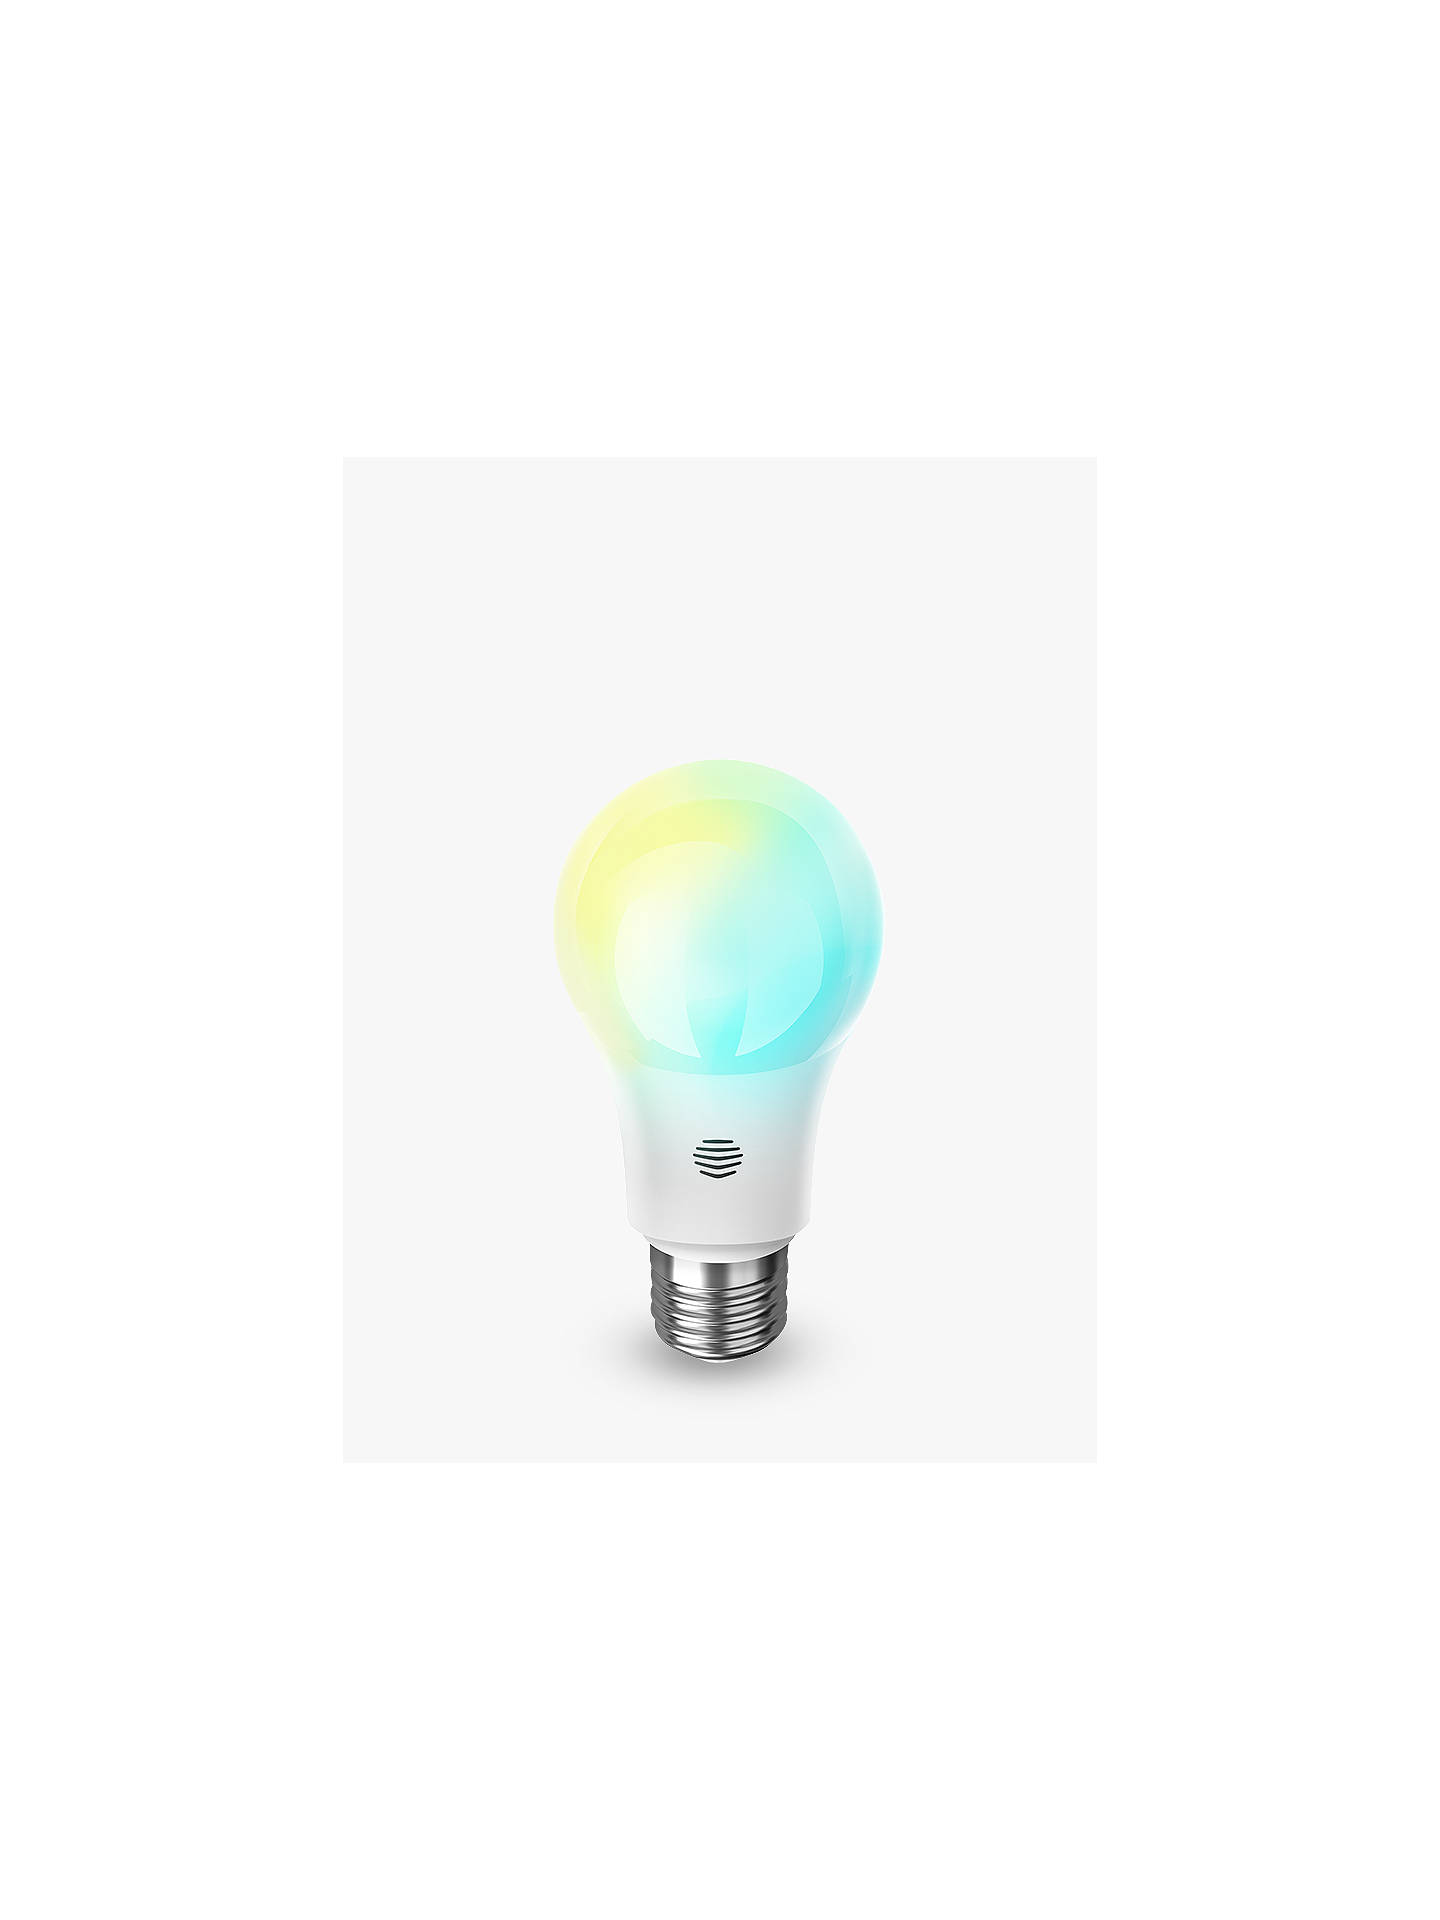 Hive Active Light Cool To Warm White Wireless Lighting Led Single Lamp Holder E27 Buyhive Bulb 9w A60